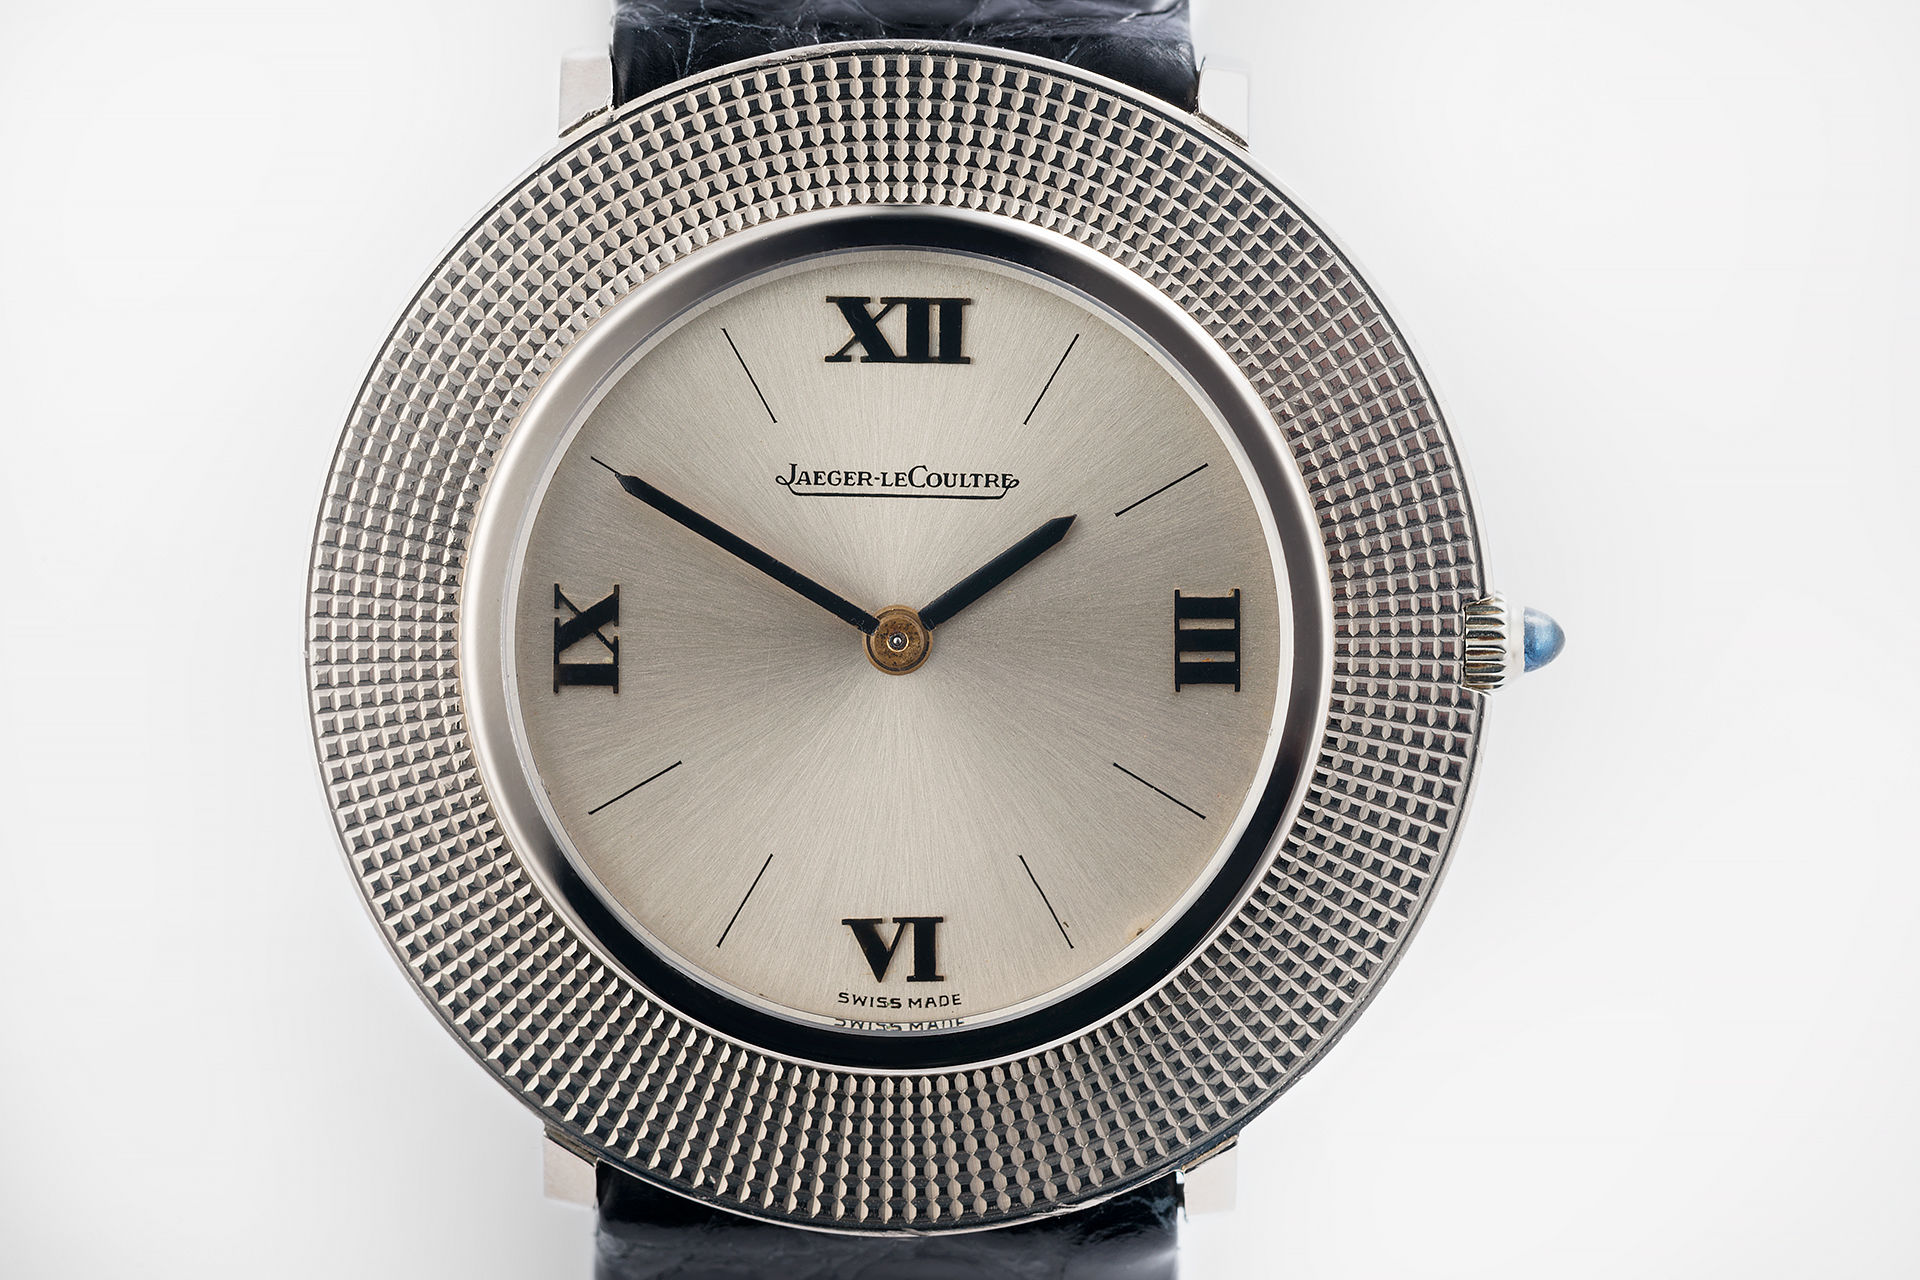 ref 4432 | White Gold Dress watch | Jaeger-leCoultre Vintage Gent's Watch